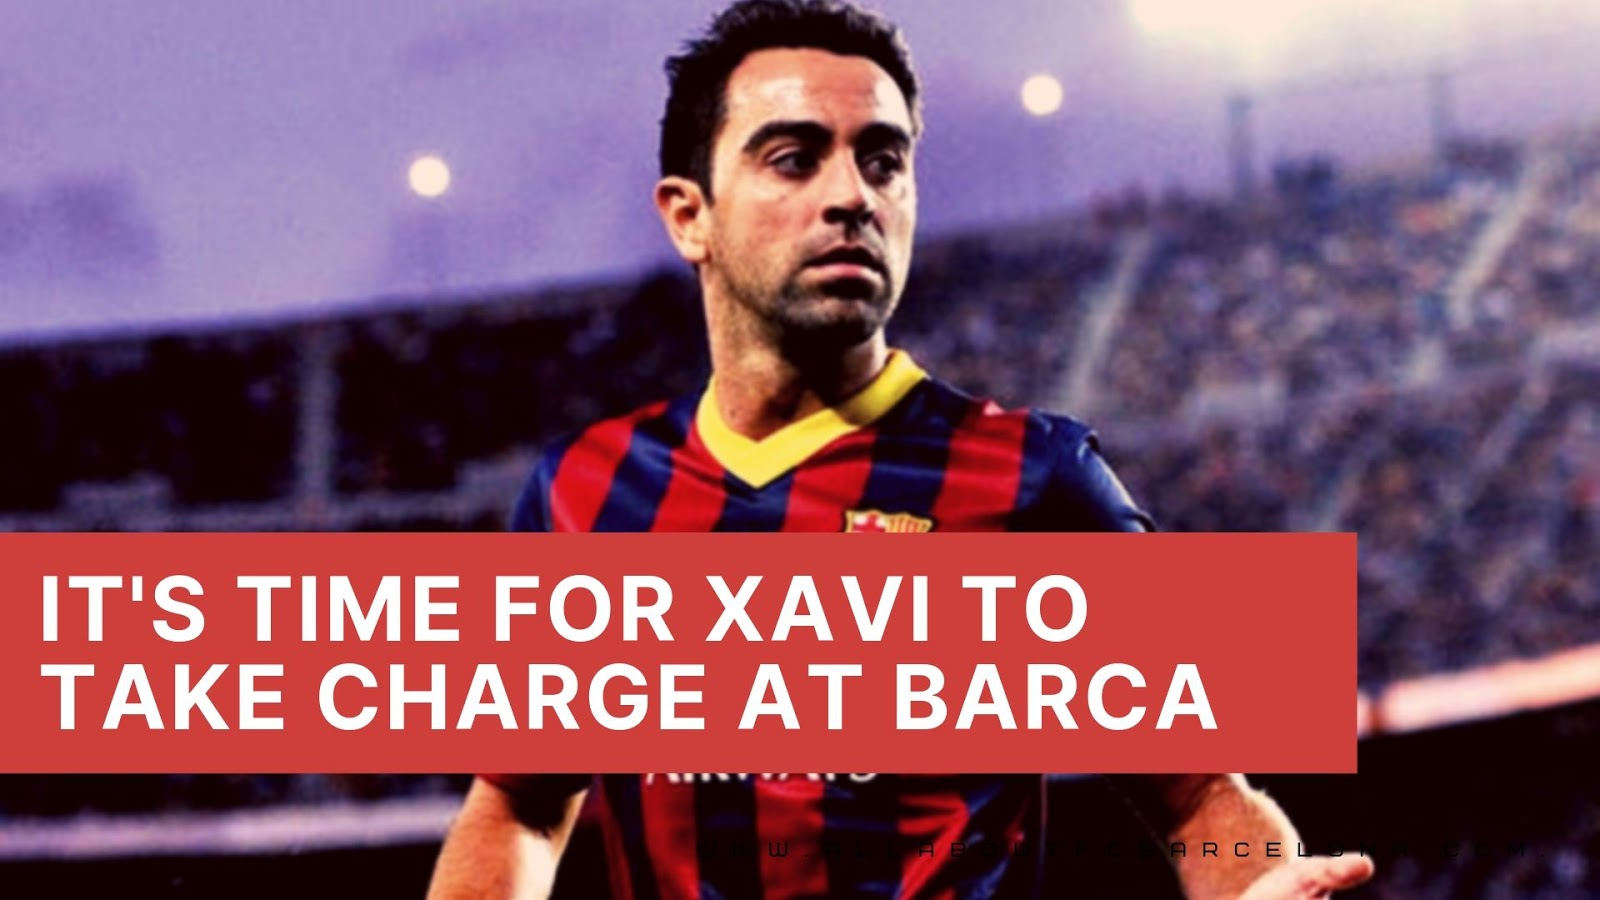 Barcelona Need to replace Valverde with Xavi Now. Otherwise it would be Too Late!